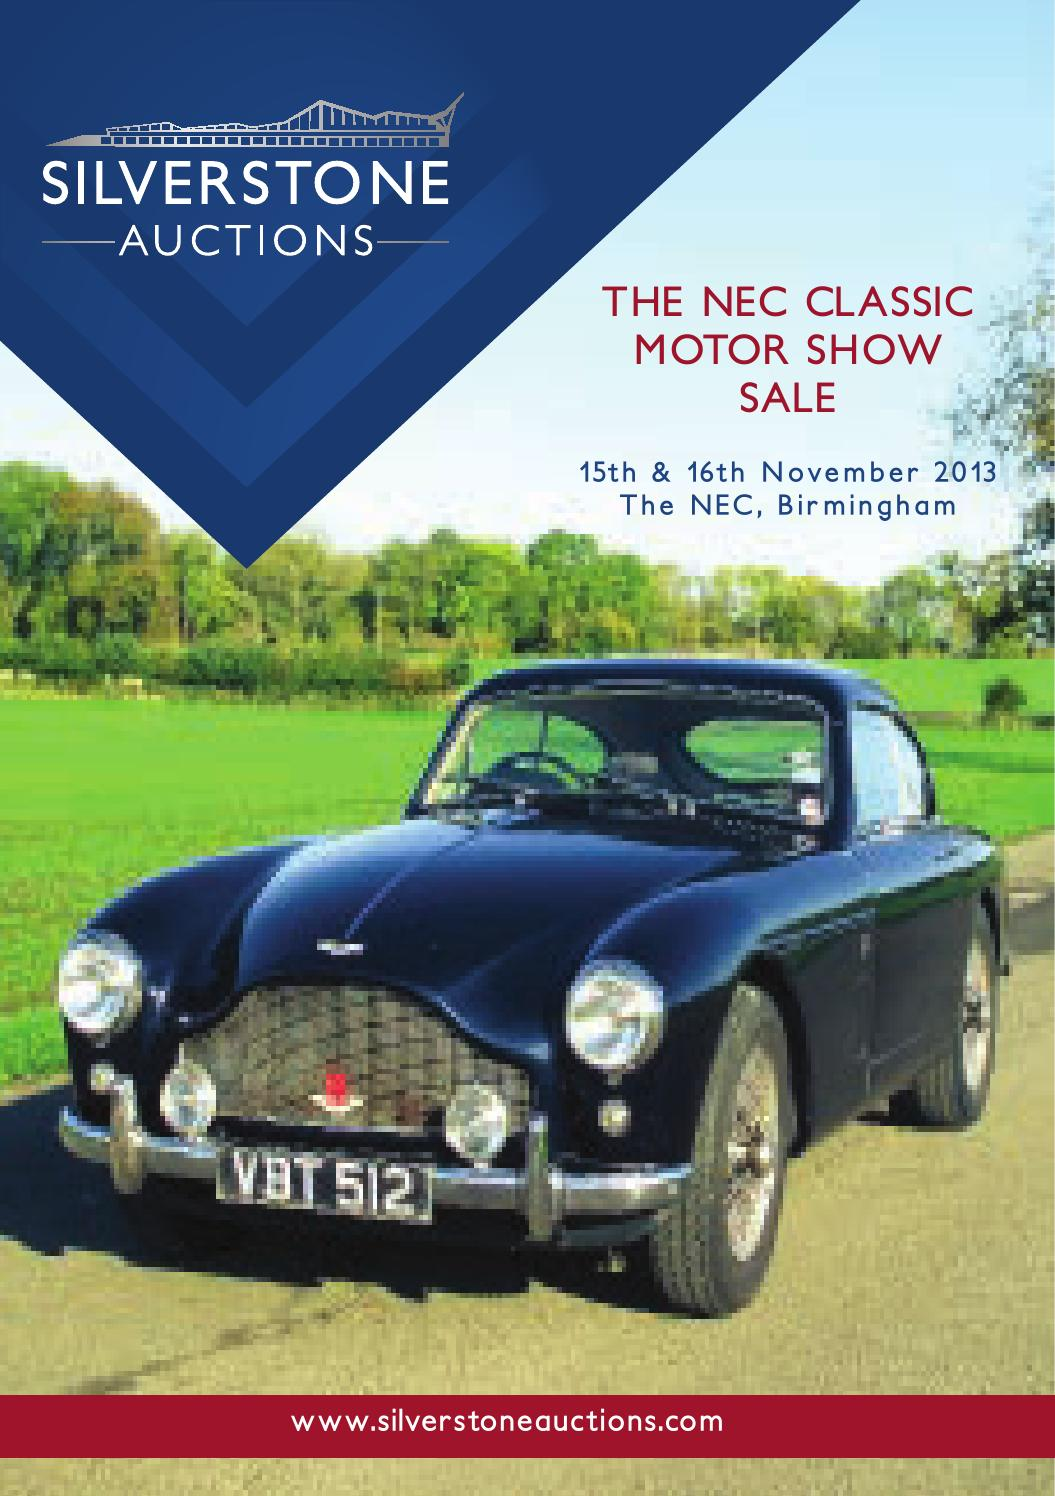 Silverstone auctions nec classic motor show sale 40 by Caroline ...